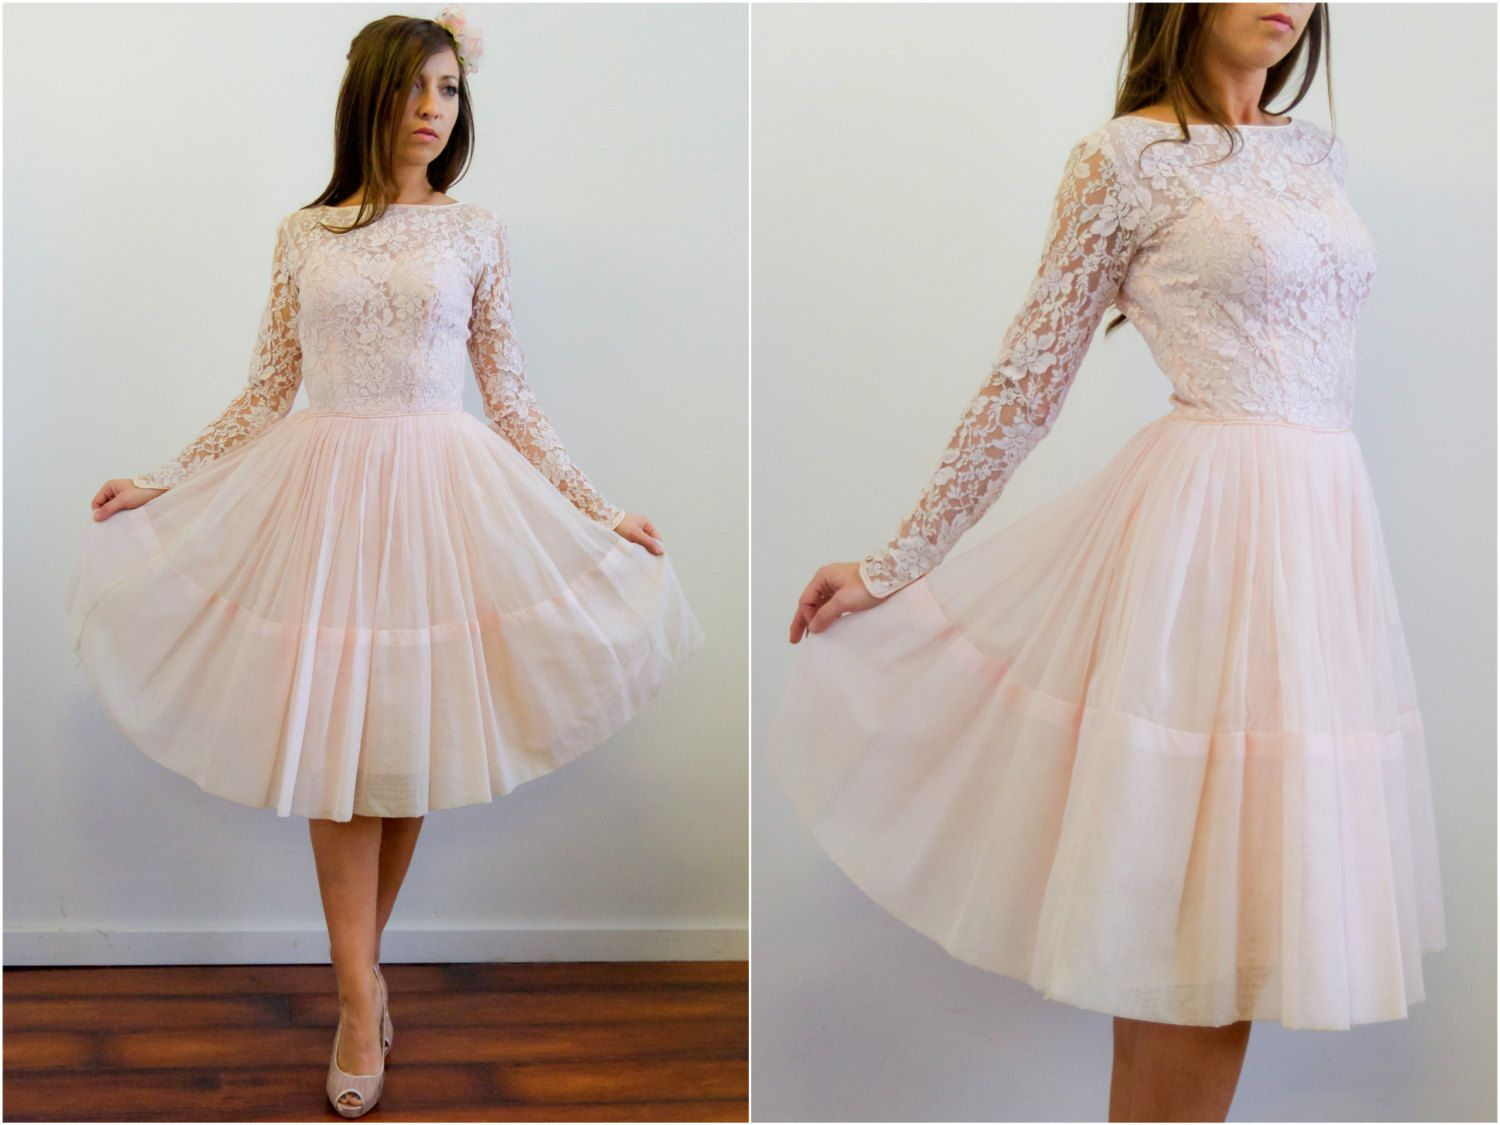 Vintage 1950s Pink Lace Dress // 1950s Prom Dress. $265.00, via ...